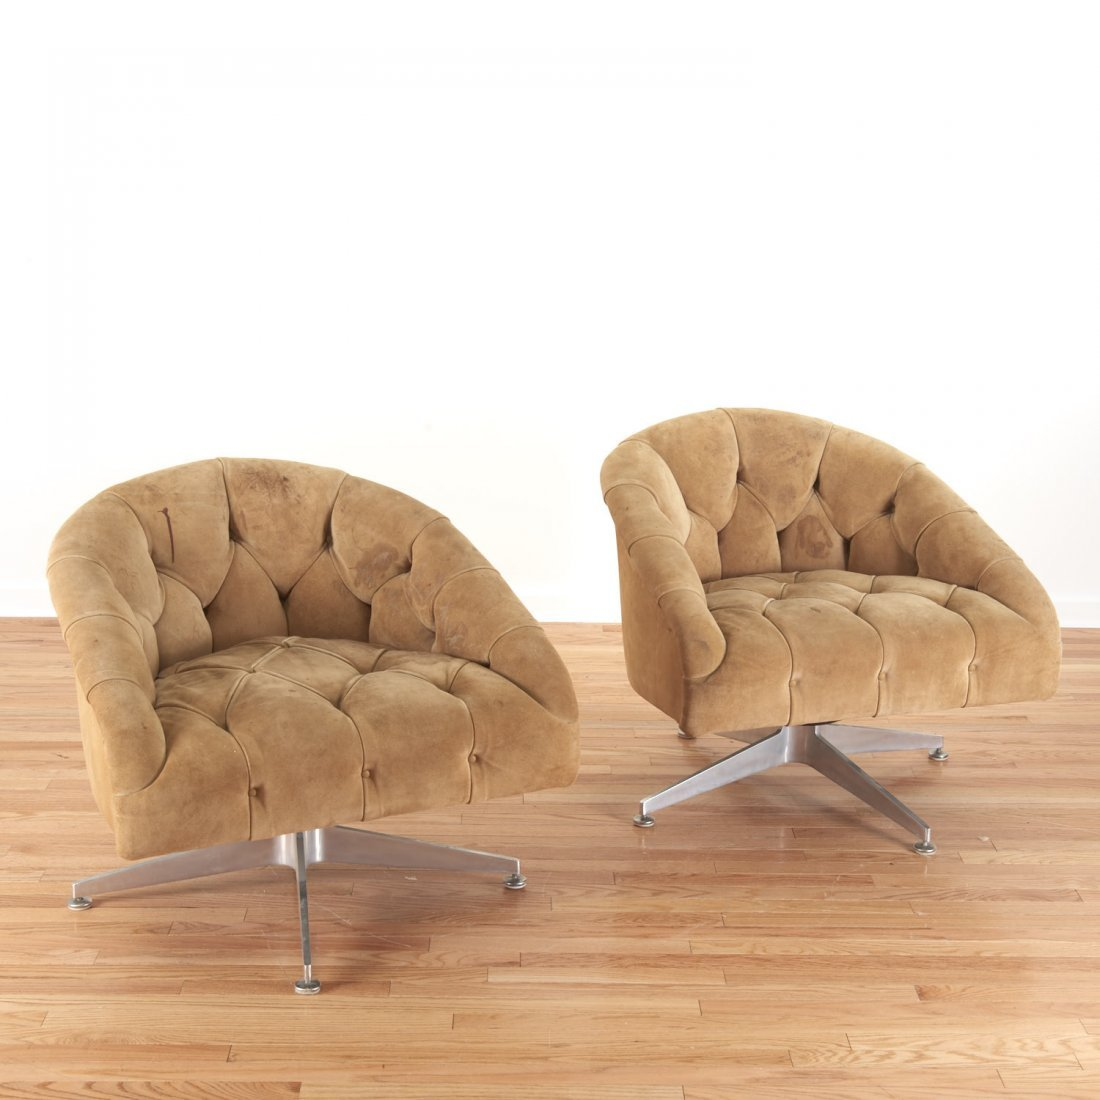 Pair Ward Bennett for Lehigh Leopold lounge chairs